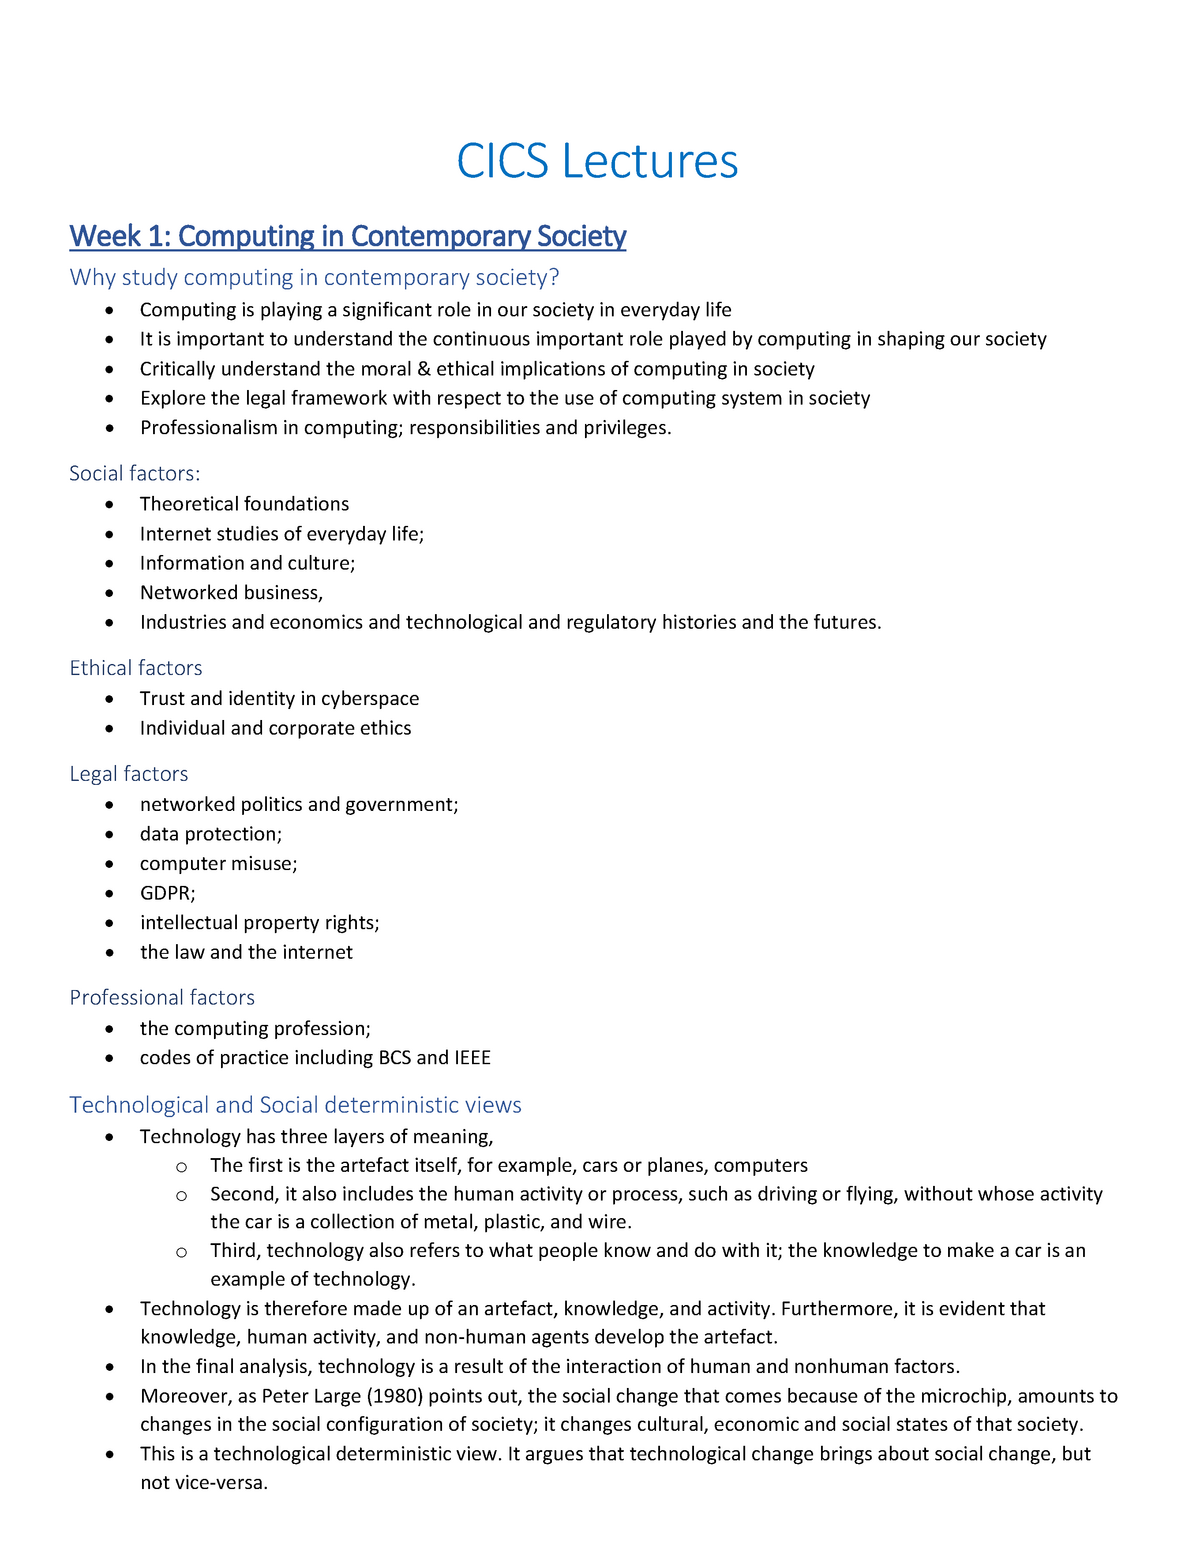 CICS everything - Summary Computing in Contemporary Society